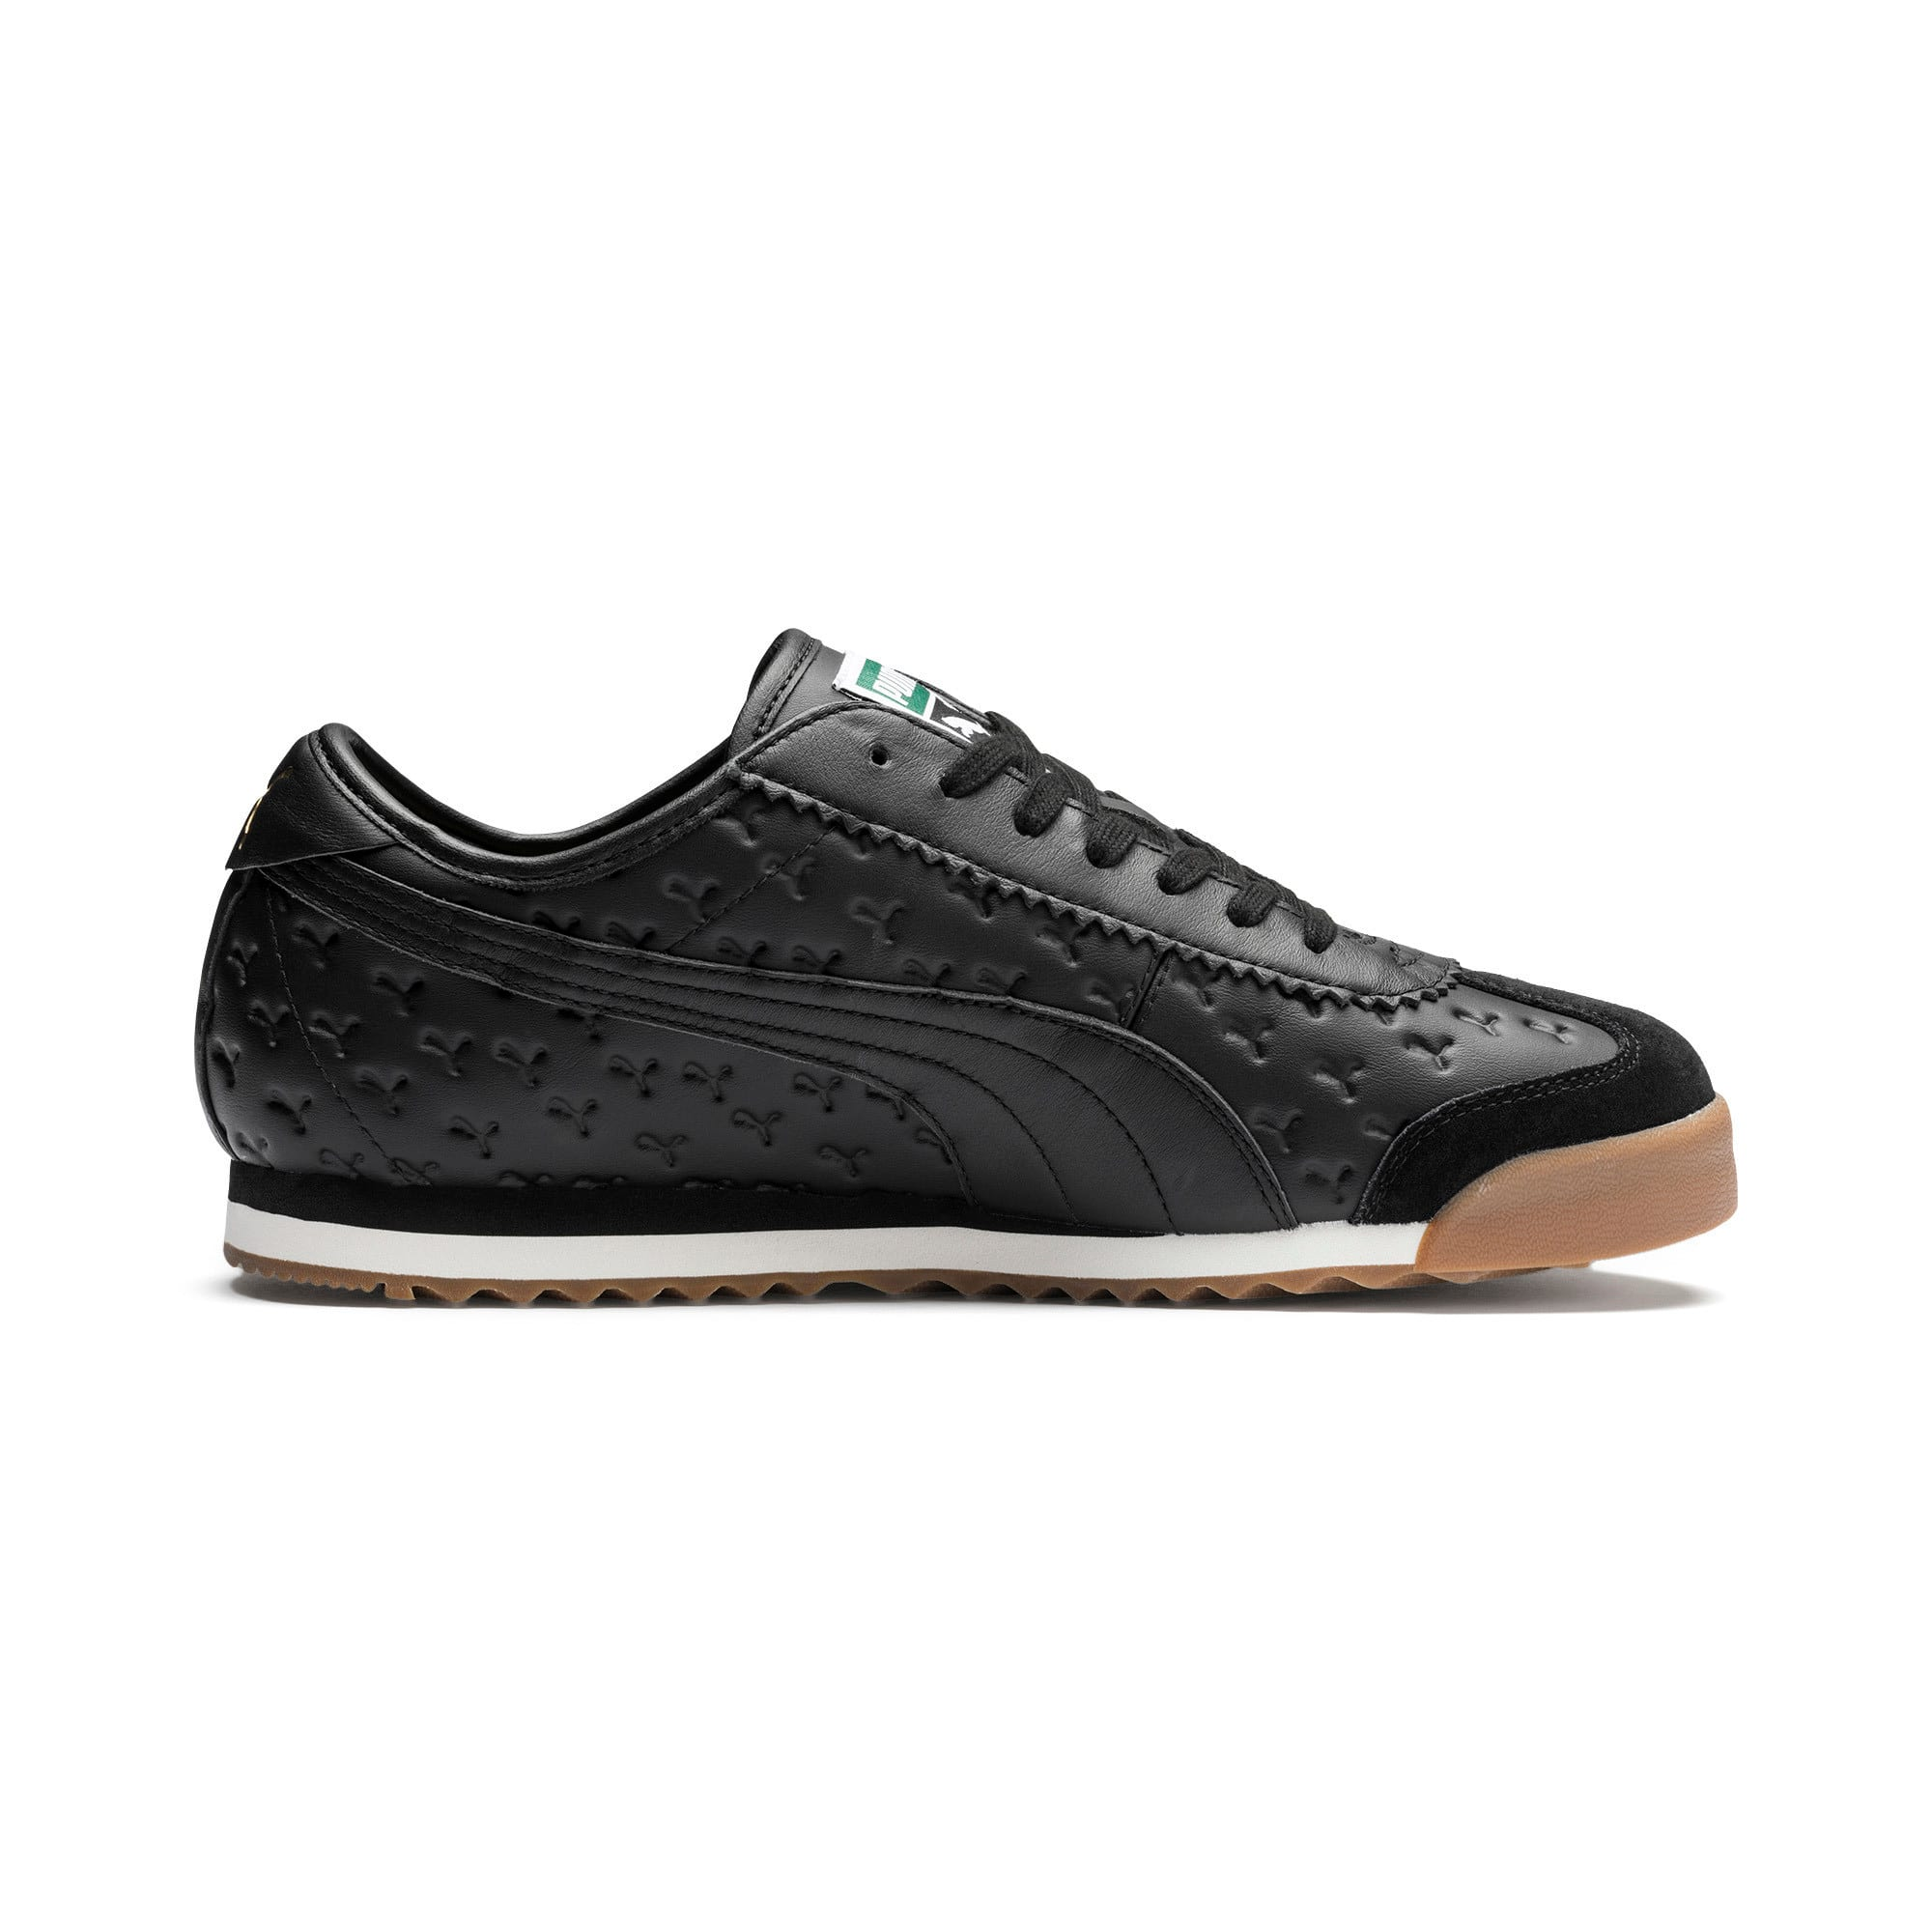 Thumbnail 6 of Roma '68 Gum Sneakers, Puma Black-Puma Black, medium